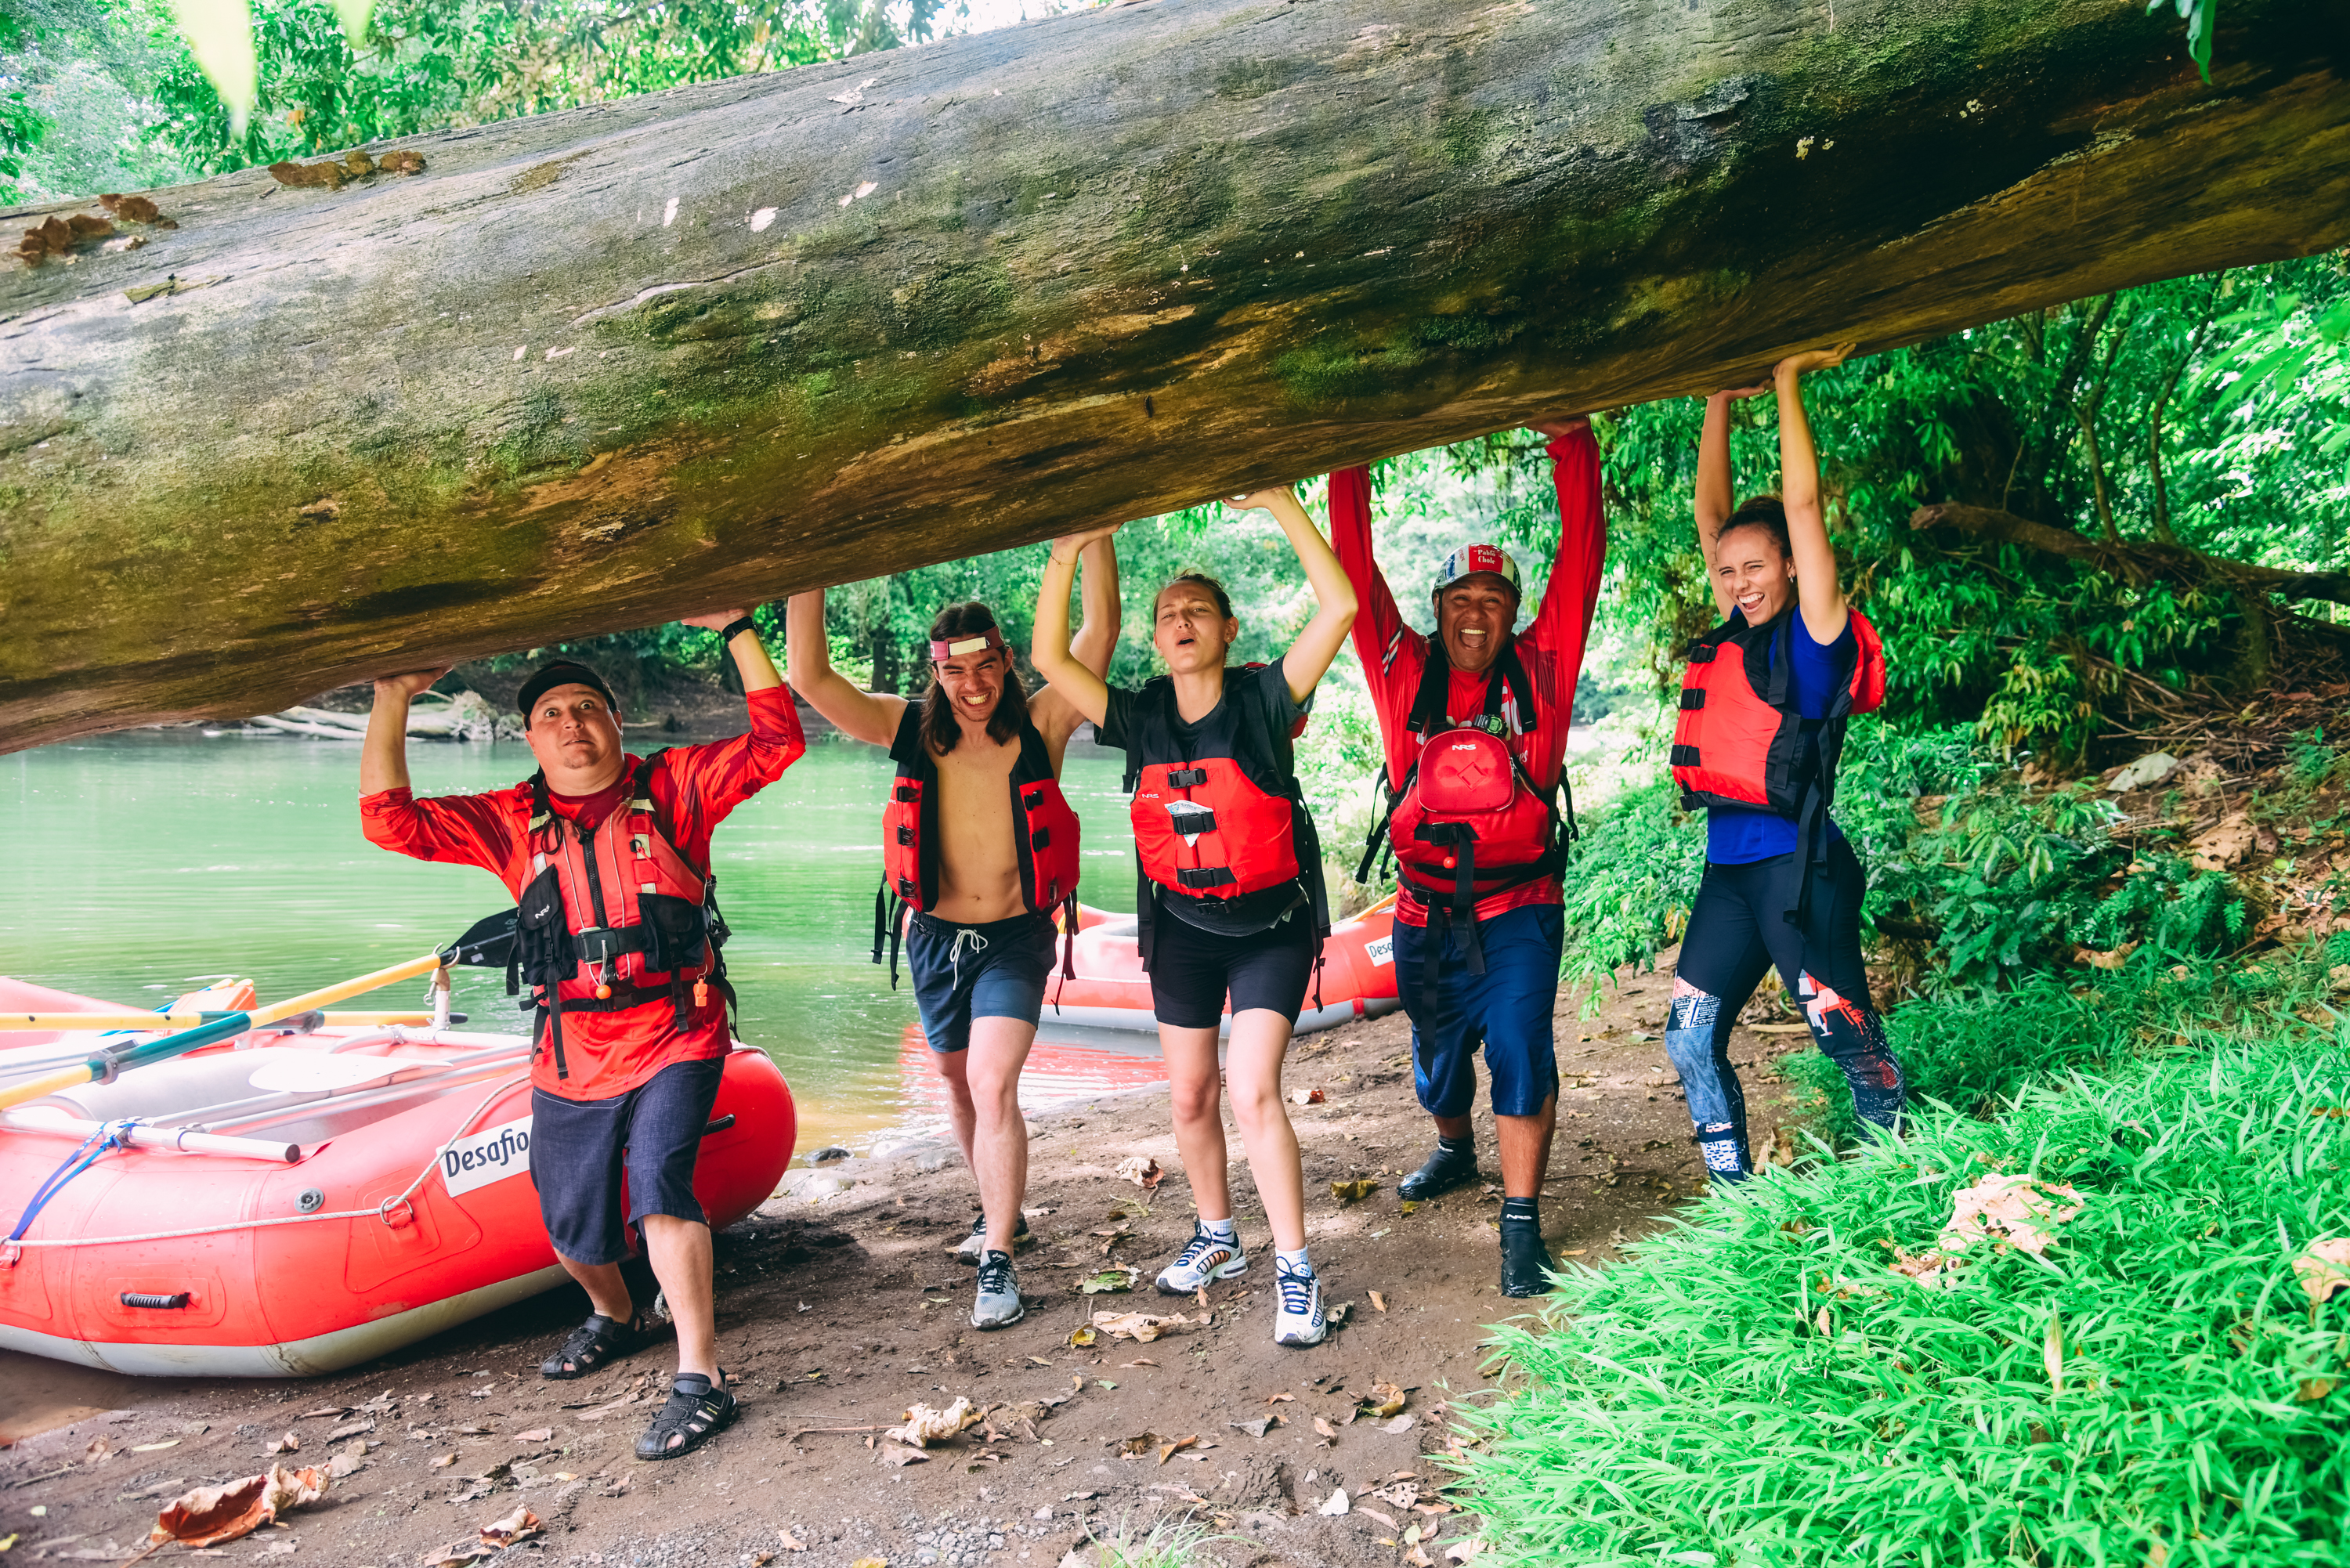 A perfect tour for all ages!One of the best Arenal tours for families visiting La Fortuna and those who want to take it easy on their vacation in Costa Rica